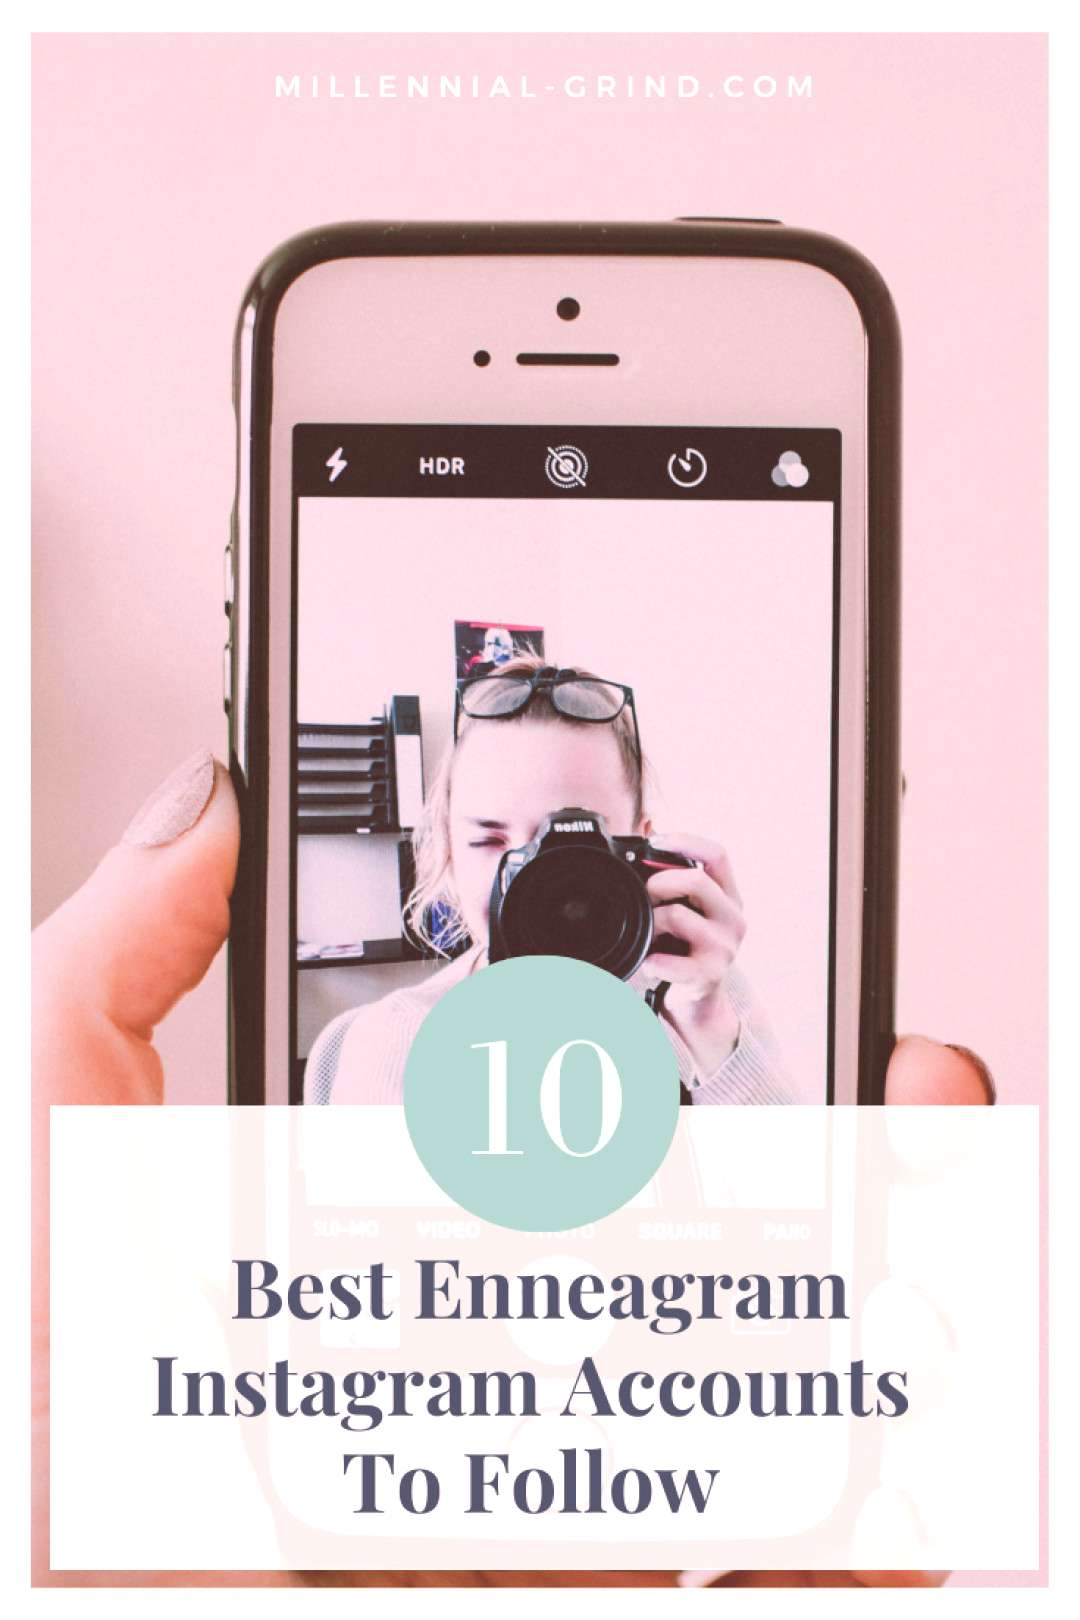 Top 10 Enneagram Instagram Accounts To Follow A big part of your Enneagram journey is about finding